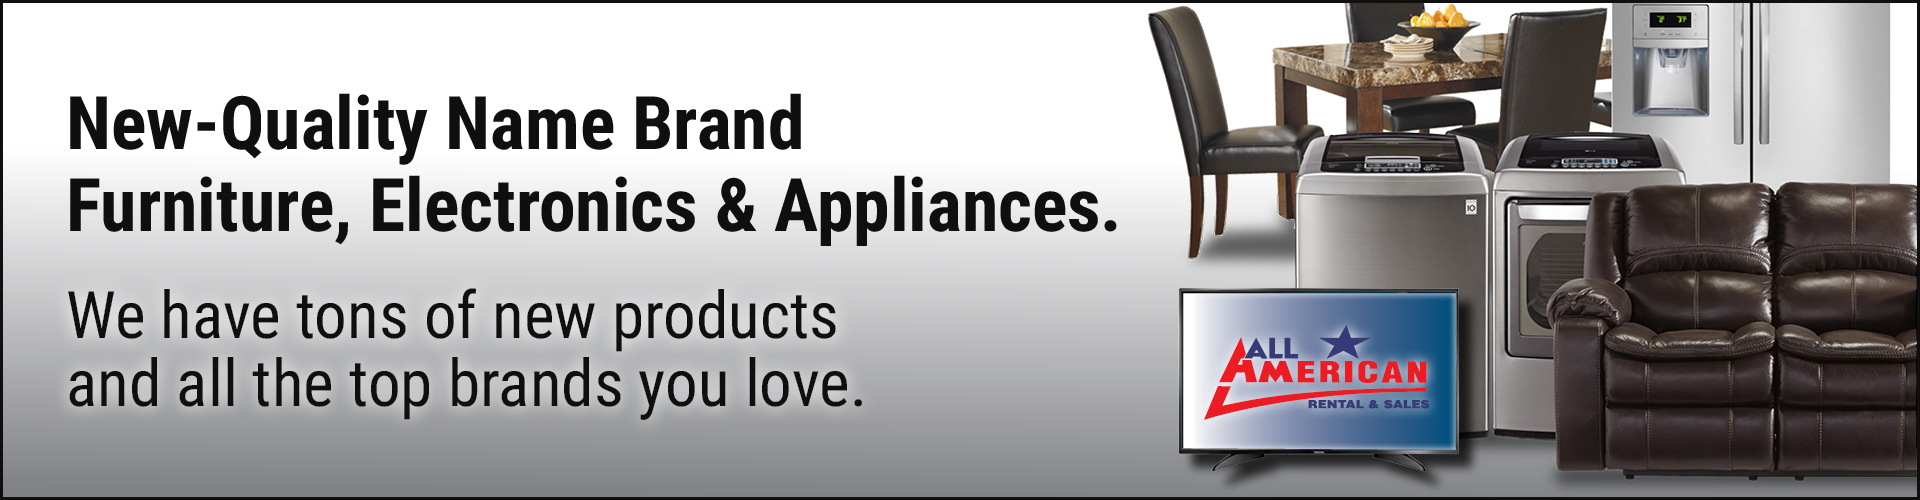 new quality name brand Furniture Electronics and Appliances